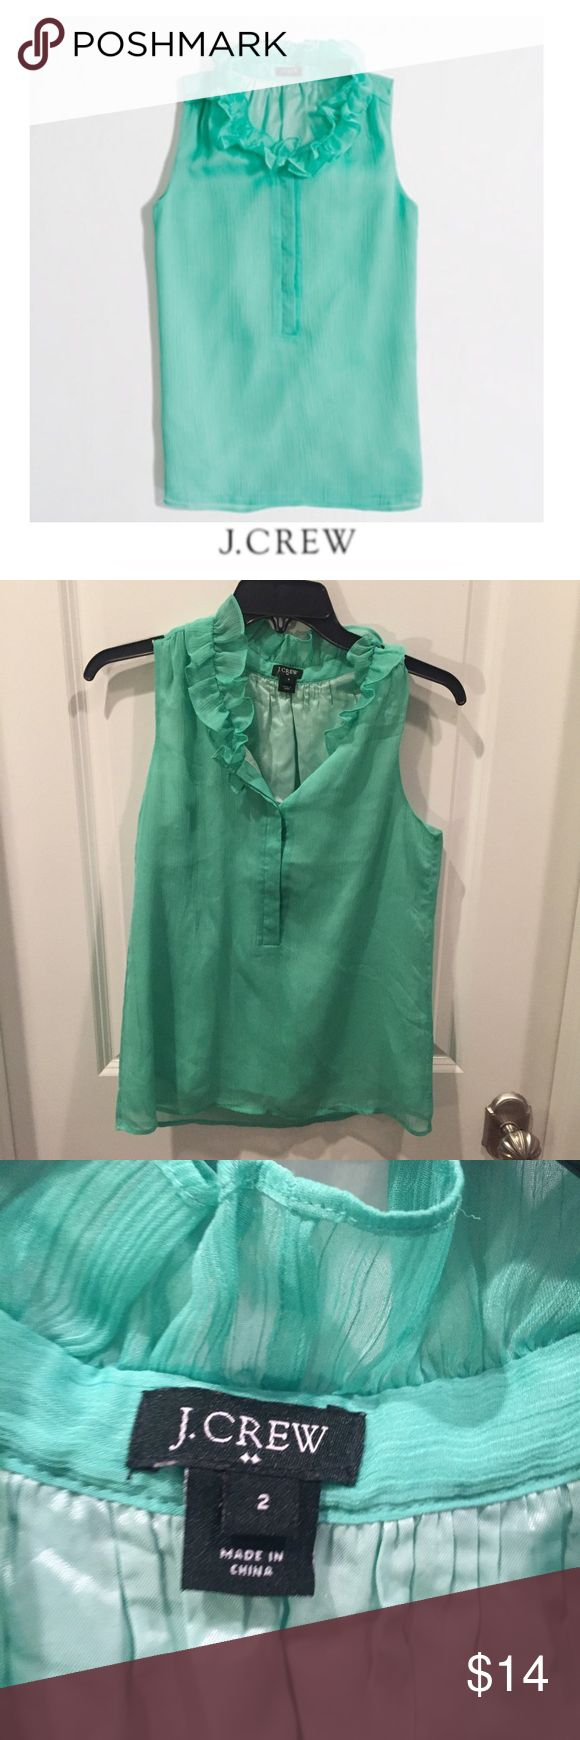 J. Crew Ruffle Collar Green Cami J. Crew Ruffle Collar Green Cami. Half button. 16.5 inch bust. Lined. 24 inches long. Gently worn. Great condition. Feel free to make an offer or bundle & save. J. Crew Tops Blouses